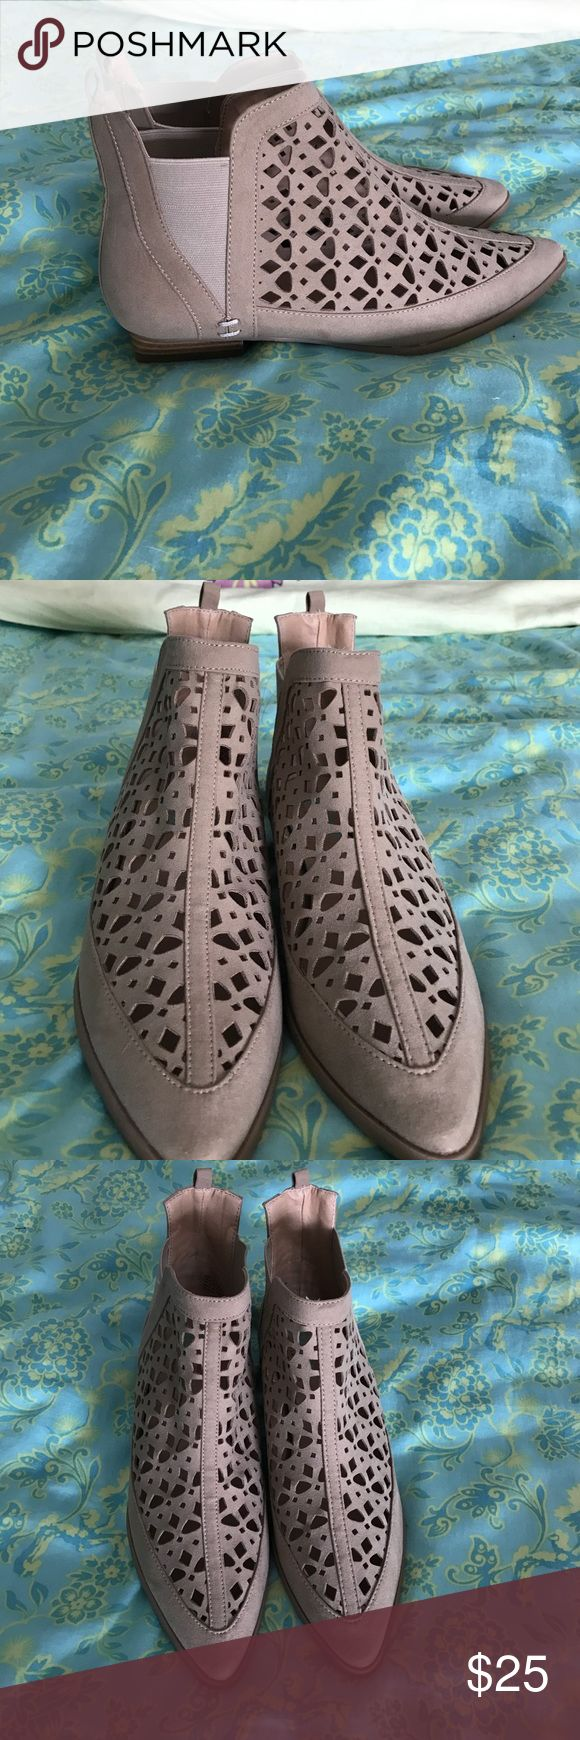 Tan/beige ankle boots - size 8.5! Never worn! Tan/beige ankle boots - never worn - size 8.5. Very cute style! plume Shoes Ankle Boots & Booties